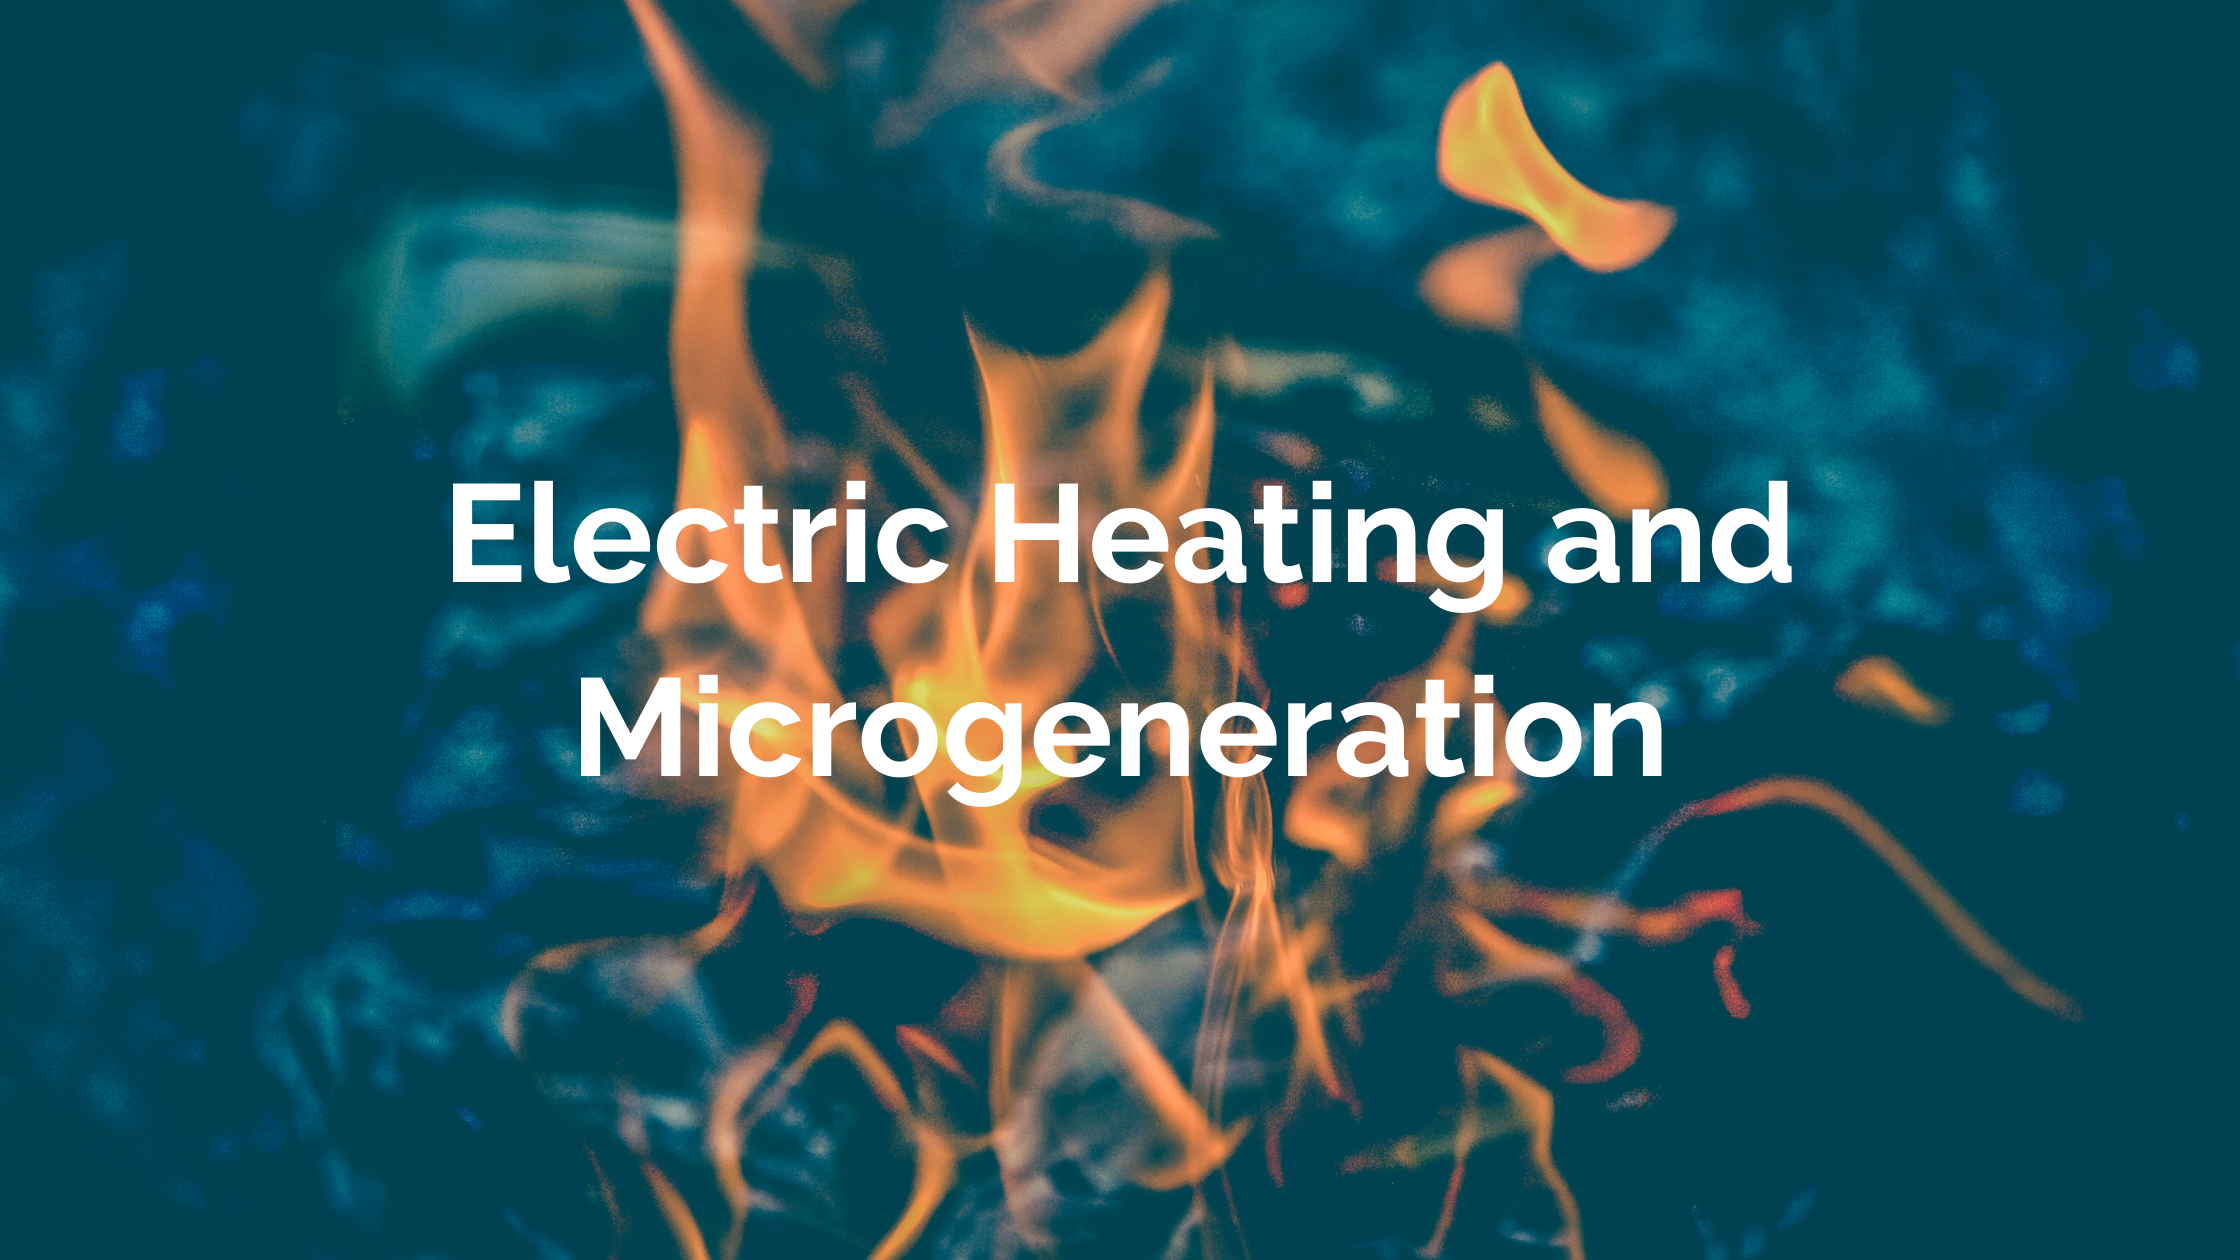 Electric Heating and Microgeneration - Borrum Energy Solutions